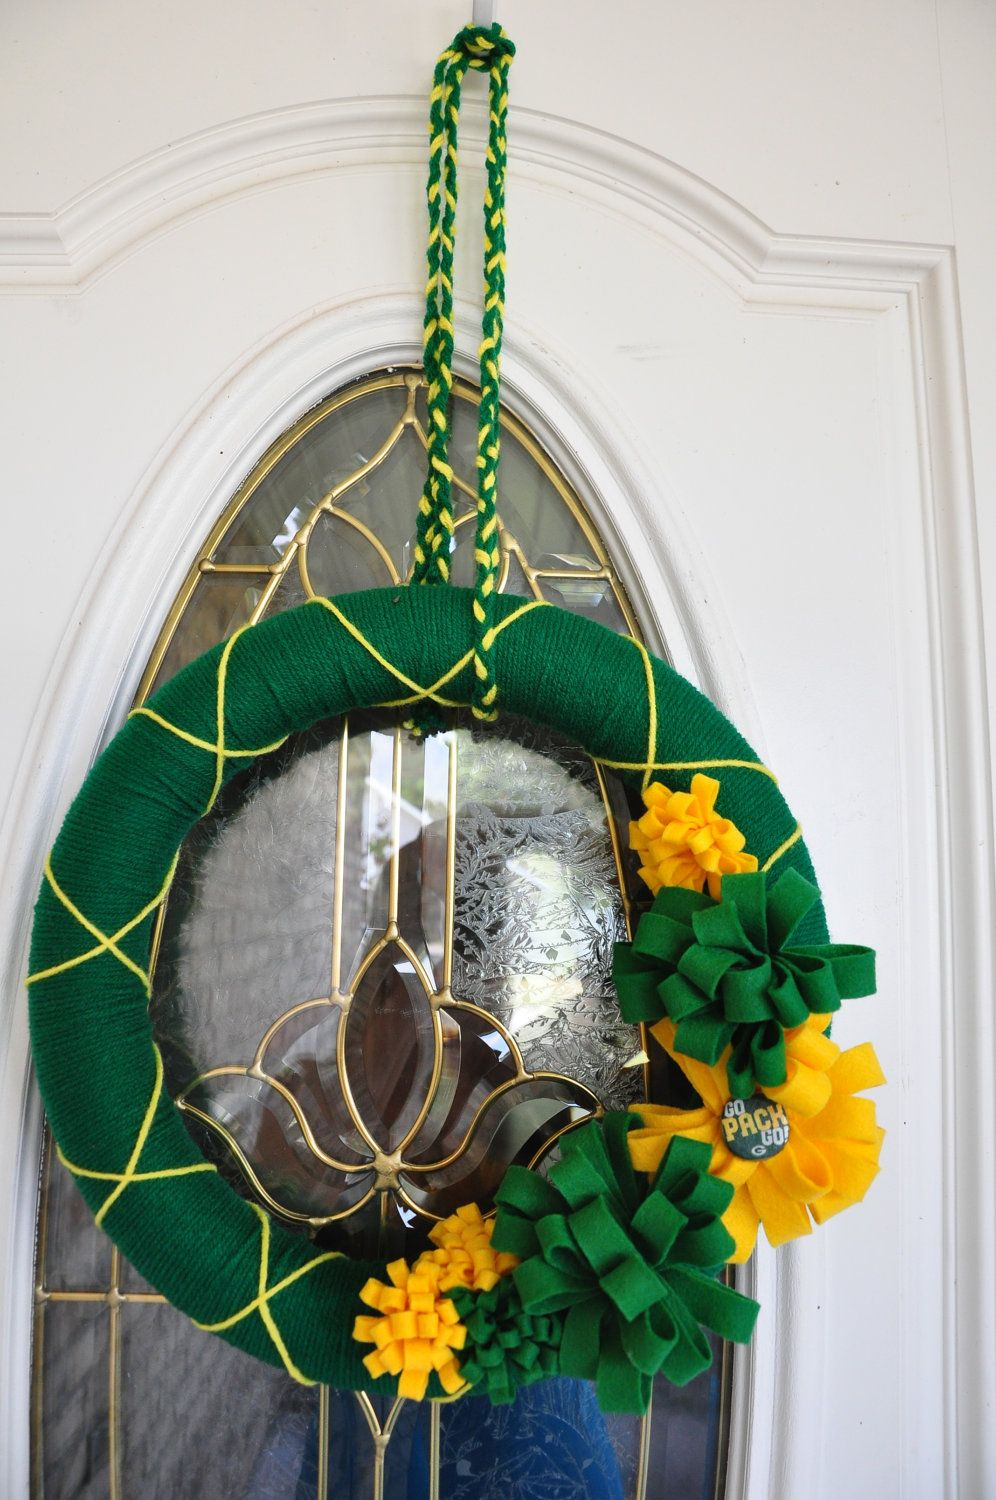 Green Bay Packer Yarn Wreath I Could Totally Make This Myself Green Bay Packers Wreath Yarn Wreath Packers Christmas